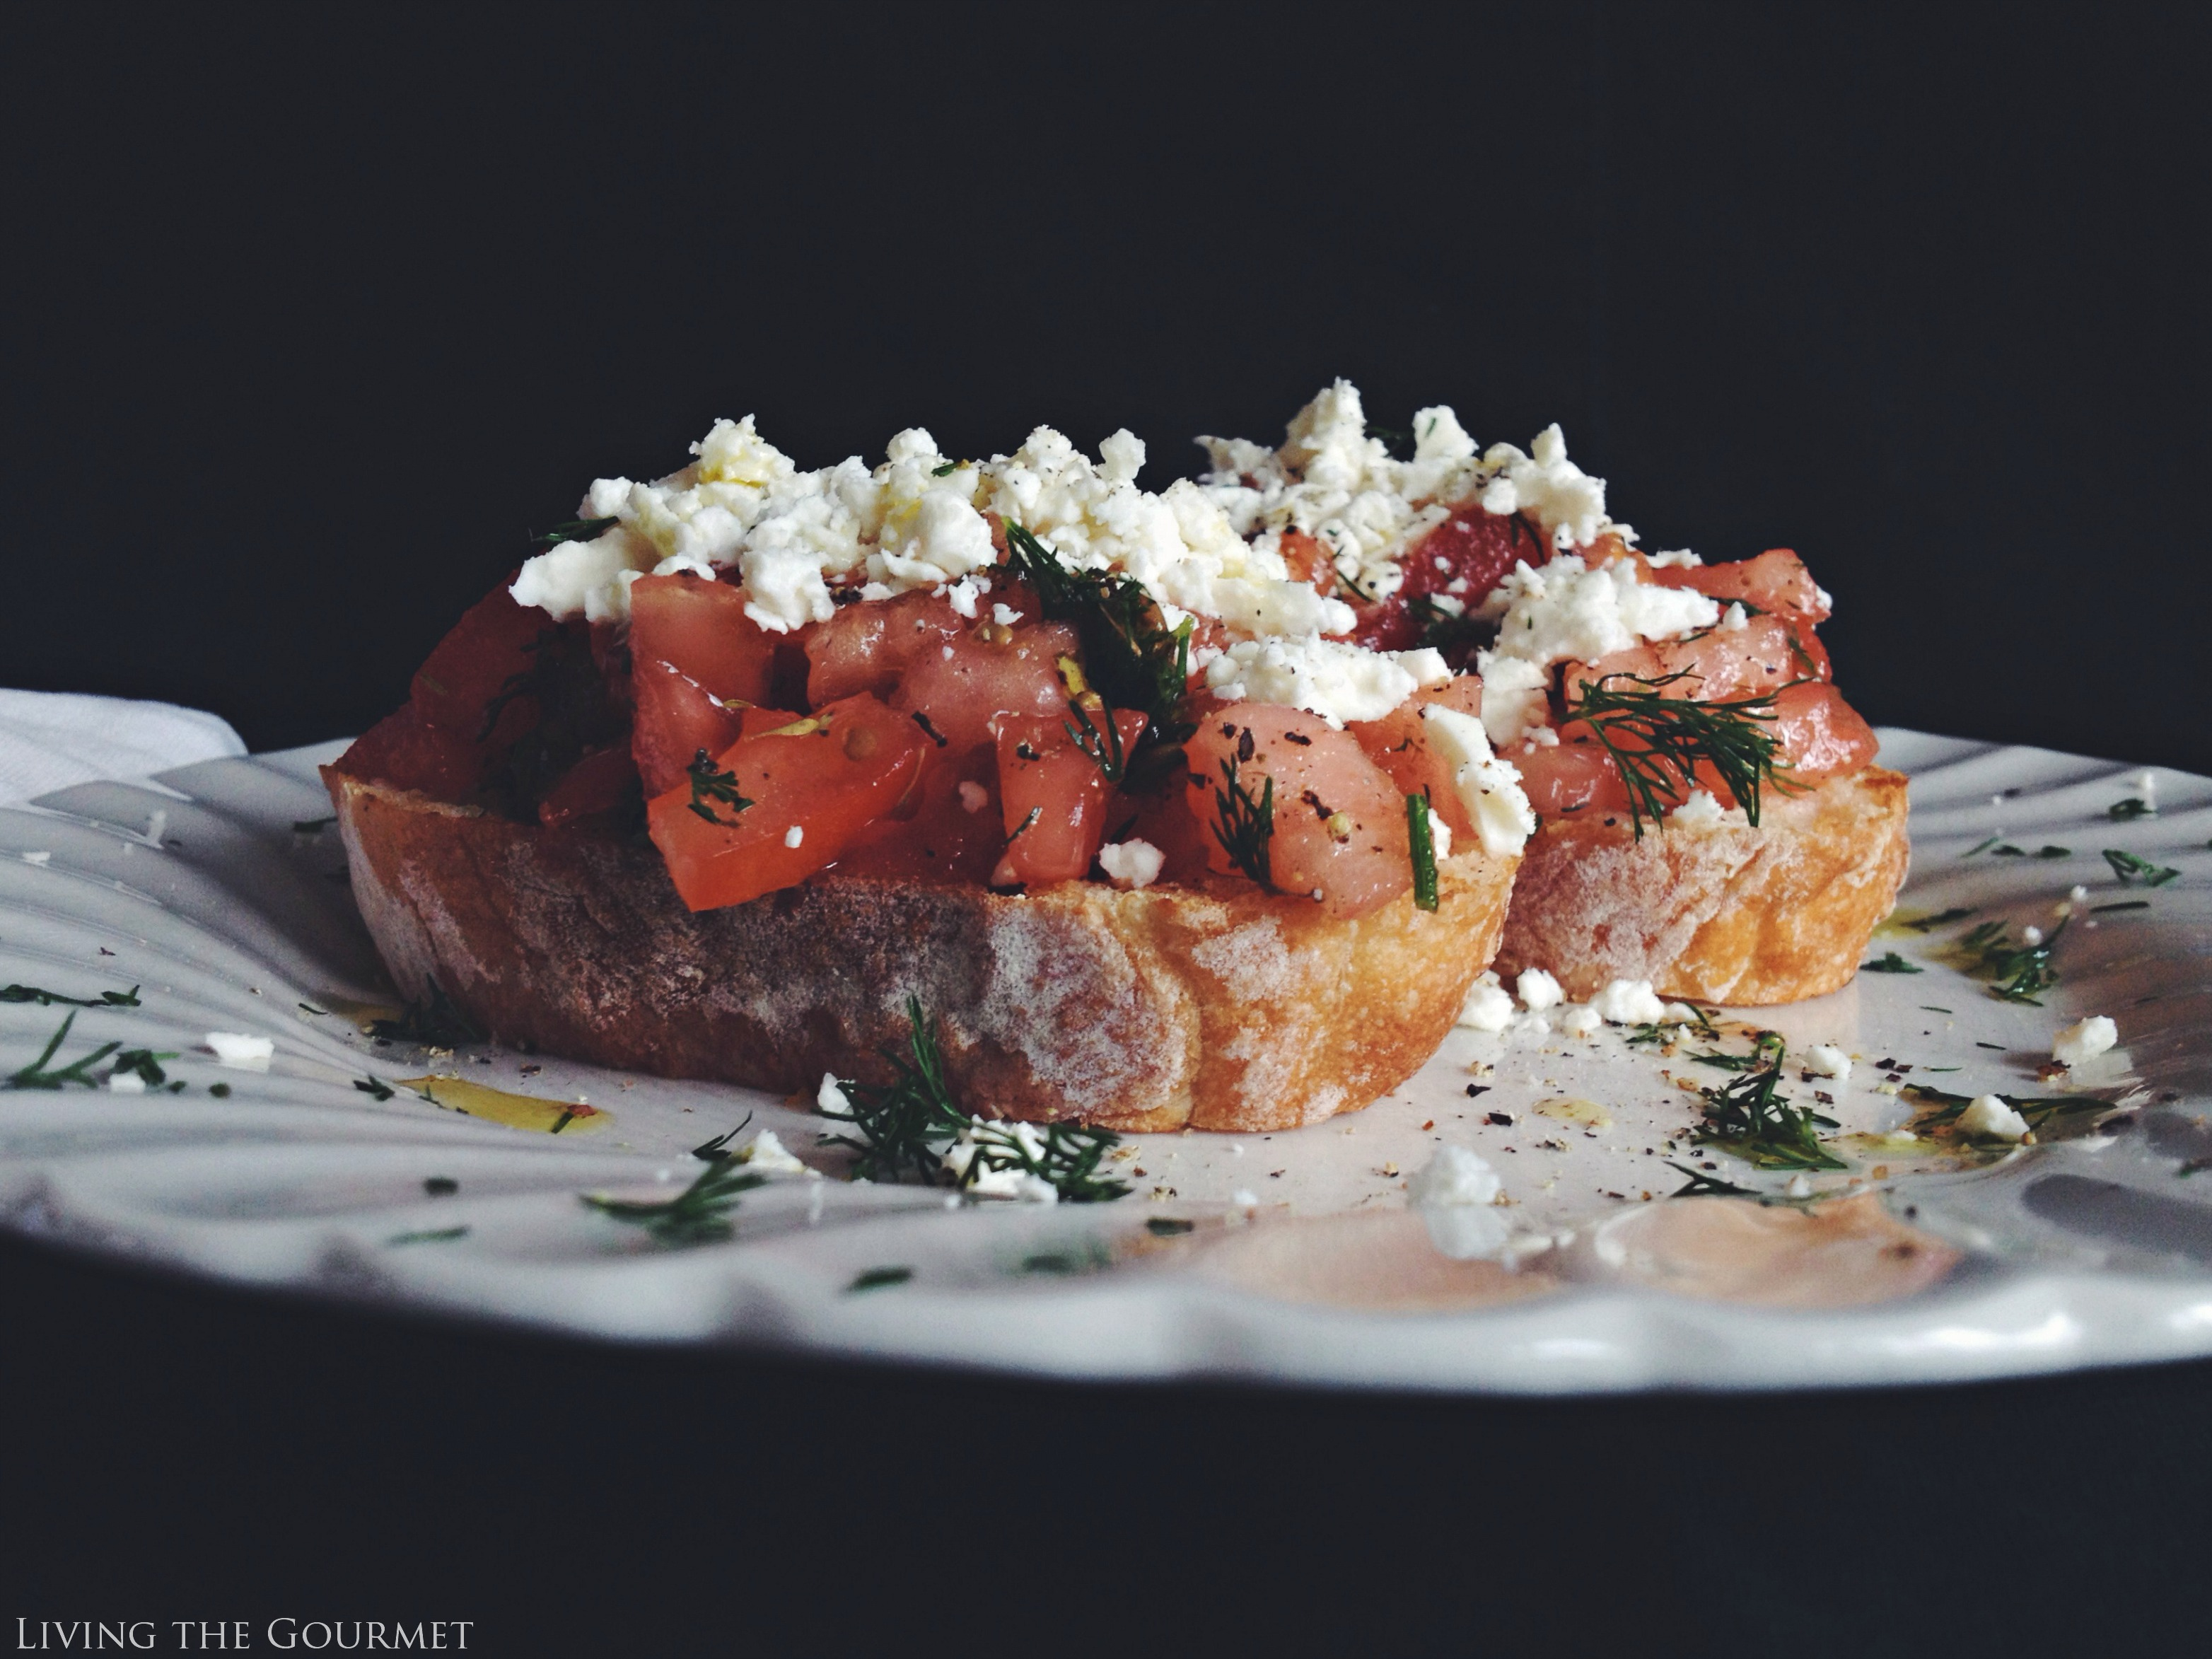 Living the Gourmet: Dakos (DAH-kohs) Greek Bruschetta